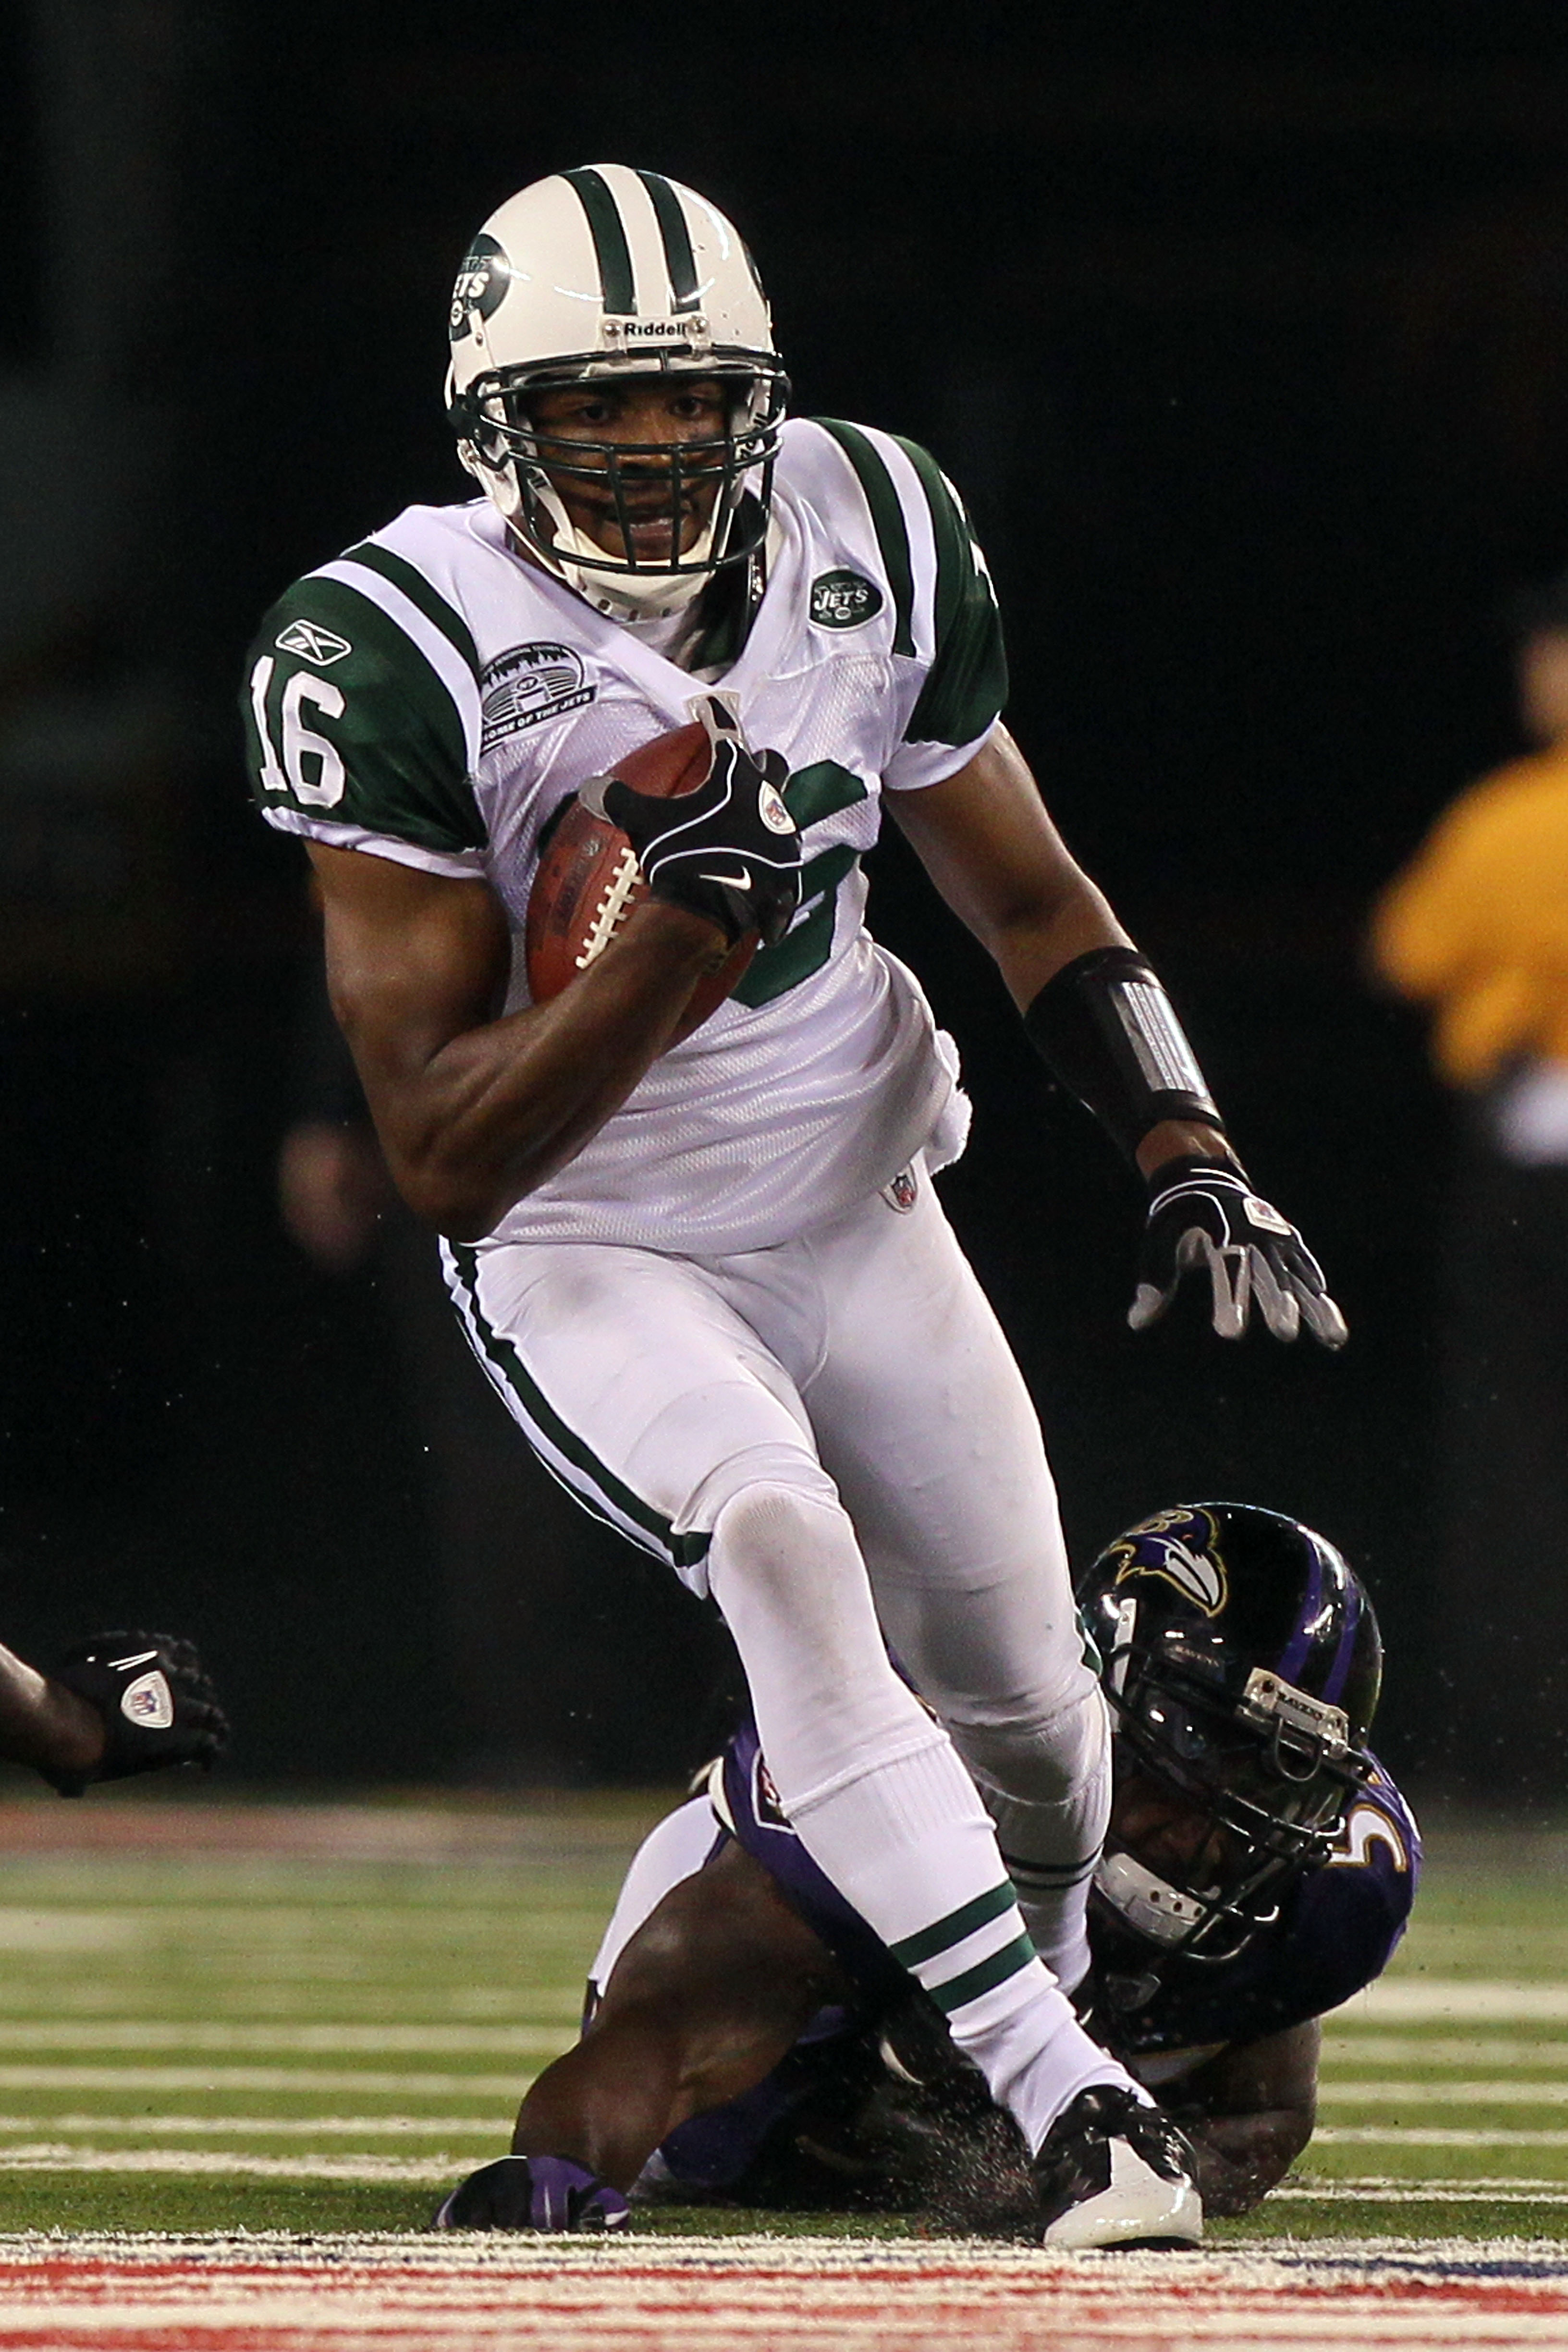 EAST RUTHERFORD, NJ - SEPTEMBER 13:  Brad Smith #16 of the New York Jets runs against the Baltimore Ravens during their home opener at the New Meadowlands Stadium on September 13, 2010 in East Rutherford, New Jersey.  (Photo by Jim McIsaac/Getty Images)